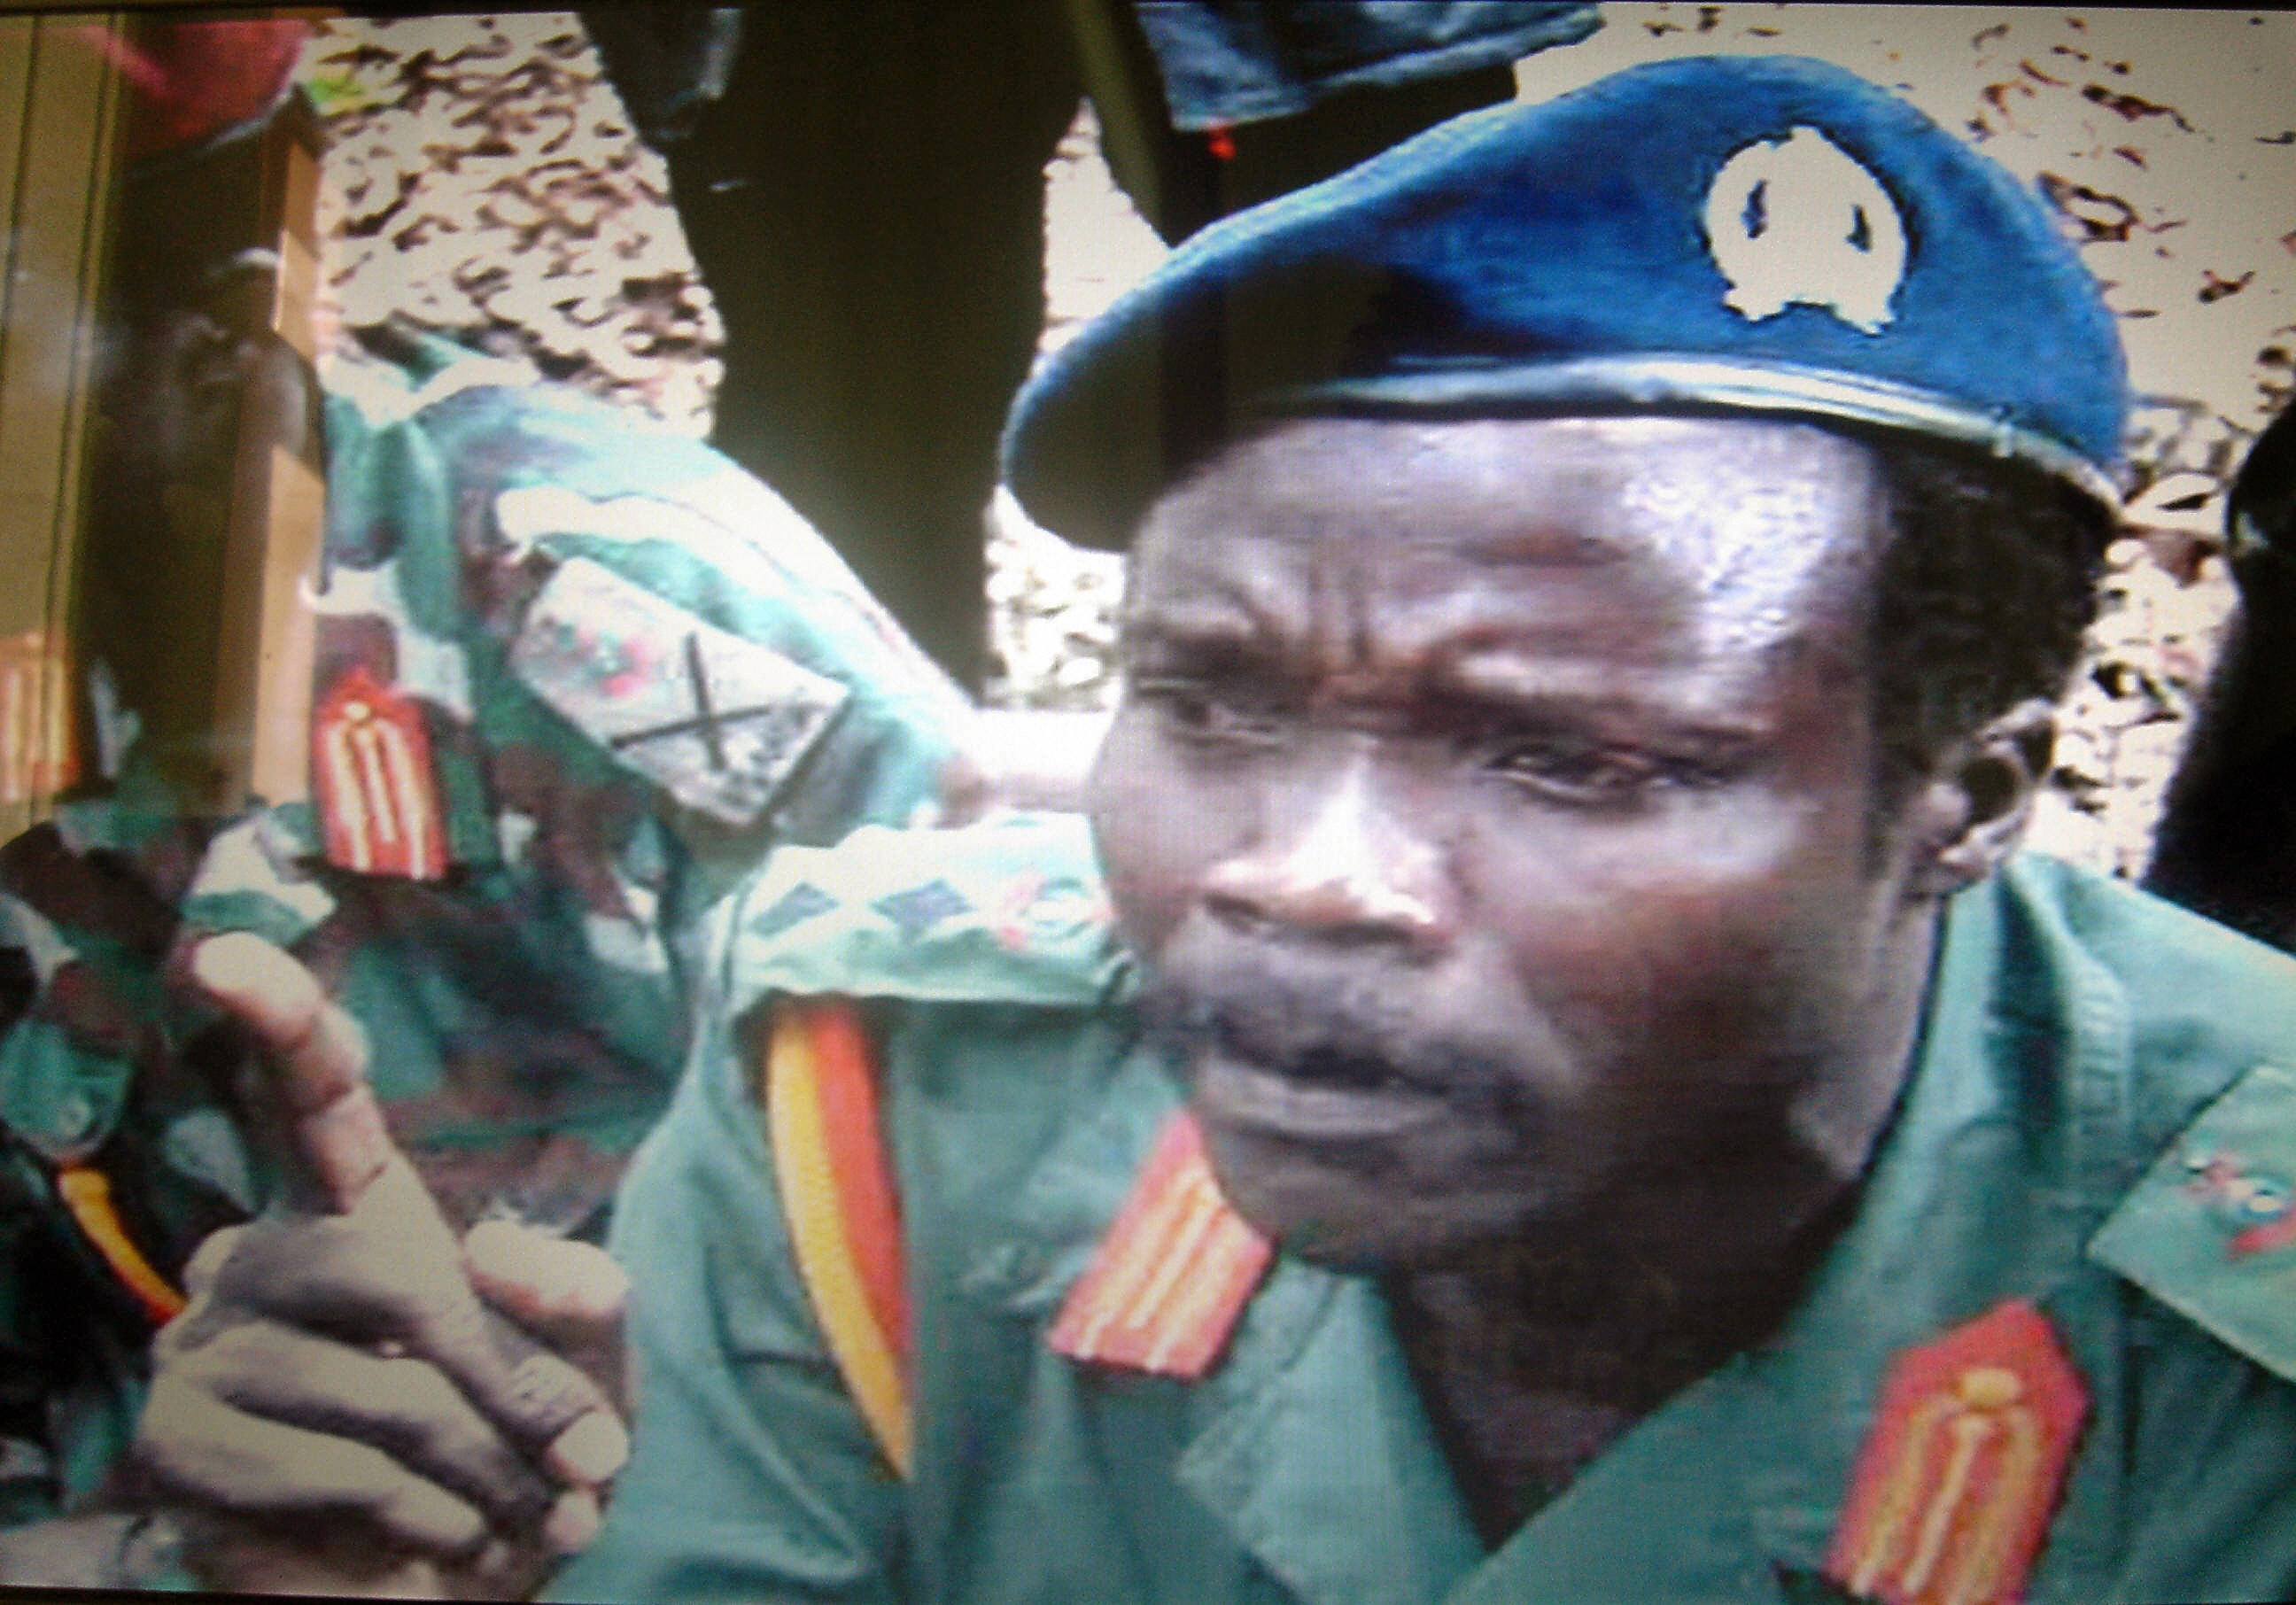 This picture, made available 24 May 2006 by the Monitor media group in Kampala, Uganda, shows one of the world's most wanted rebel chiefs, Joseph Kony of the Lord Resistance Movement.